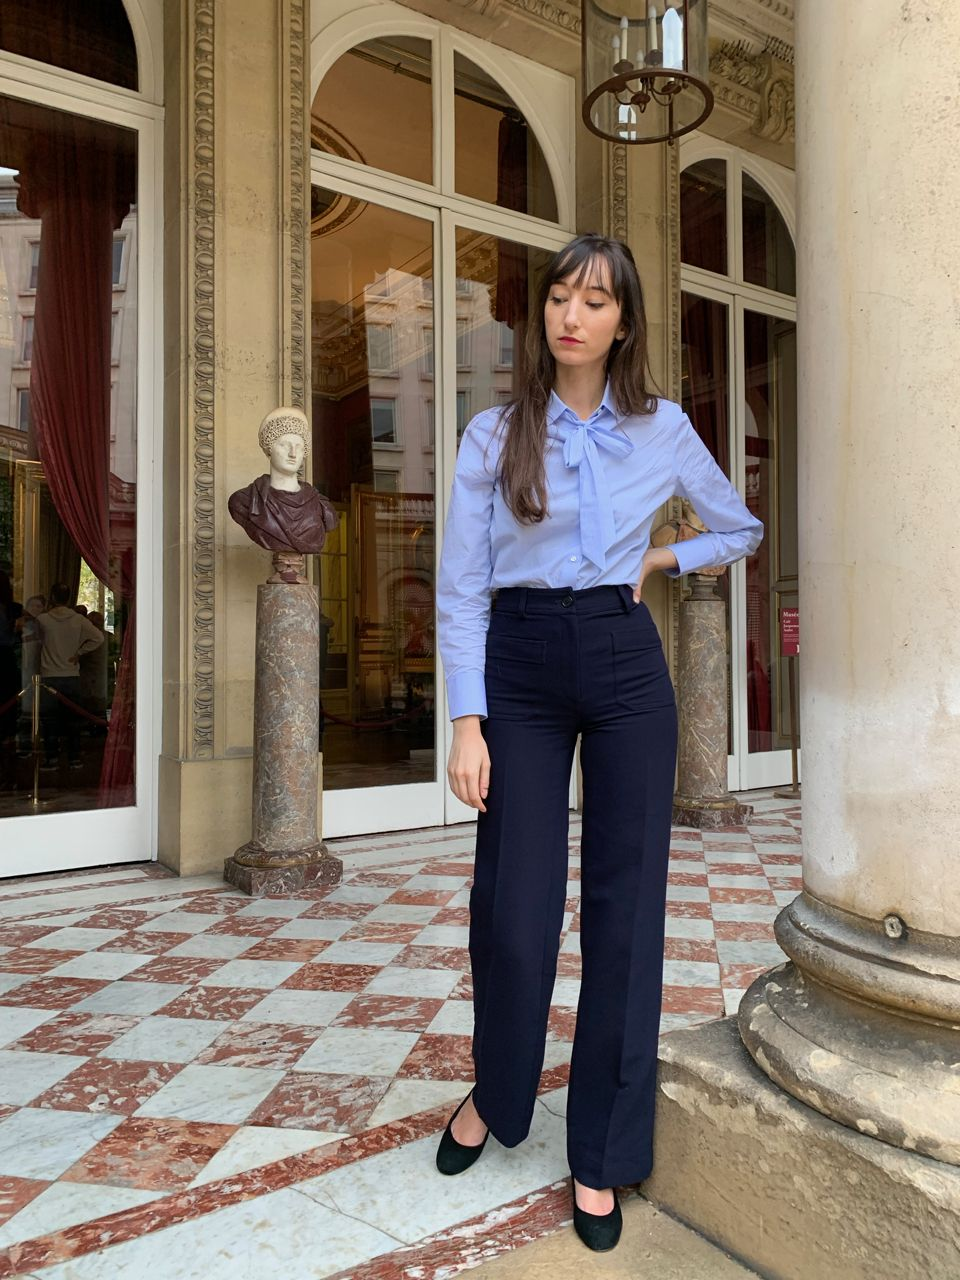 Early Fall Parisian Looks - Figaret top and Nathalie Dumeix pants